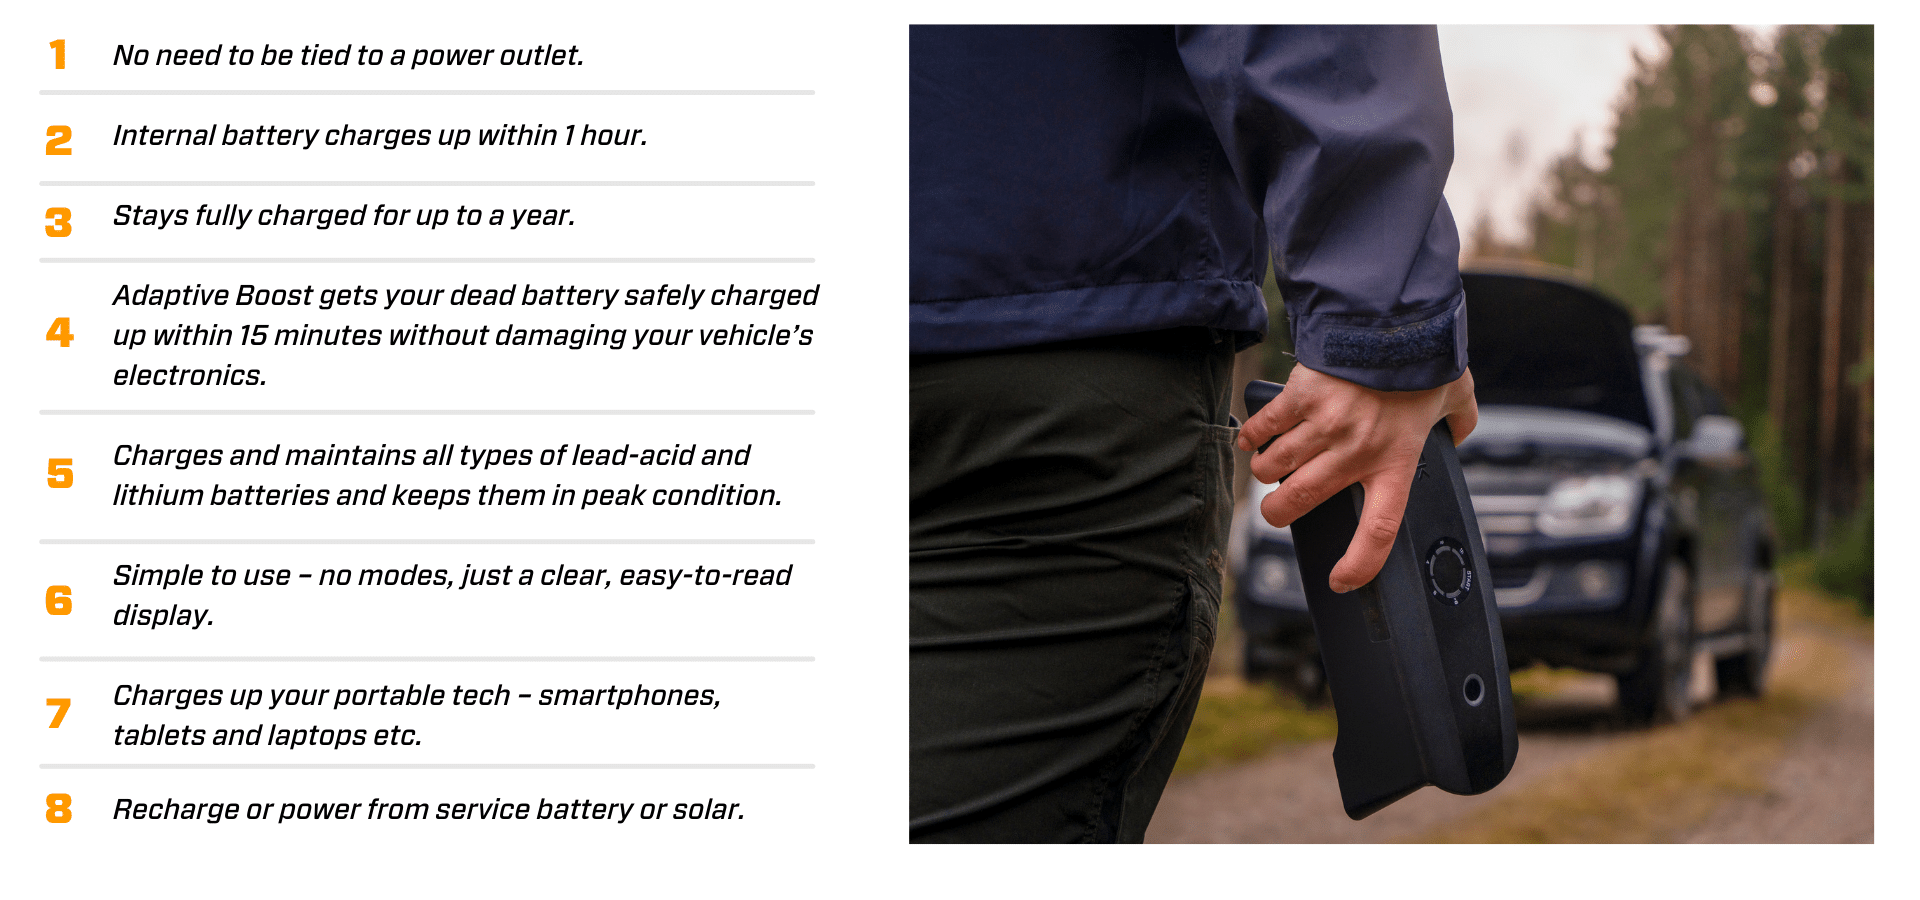 8 points about the CS FREE Portable Battery Charger with Adaptive Boost